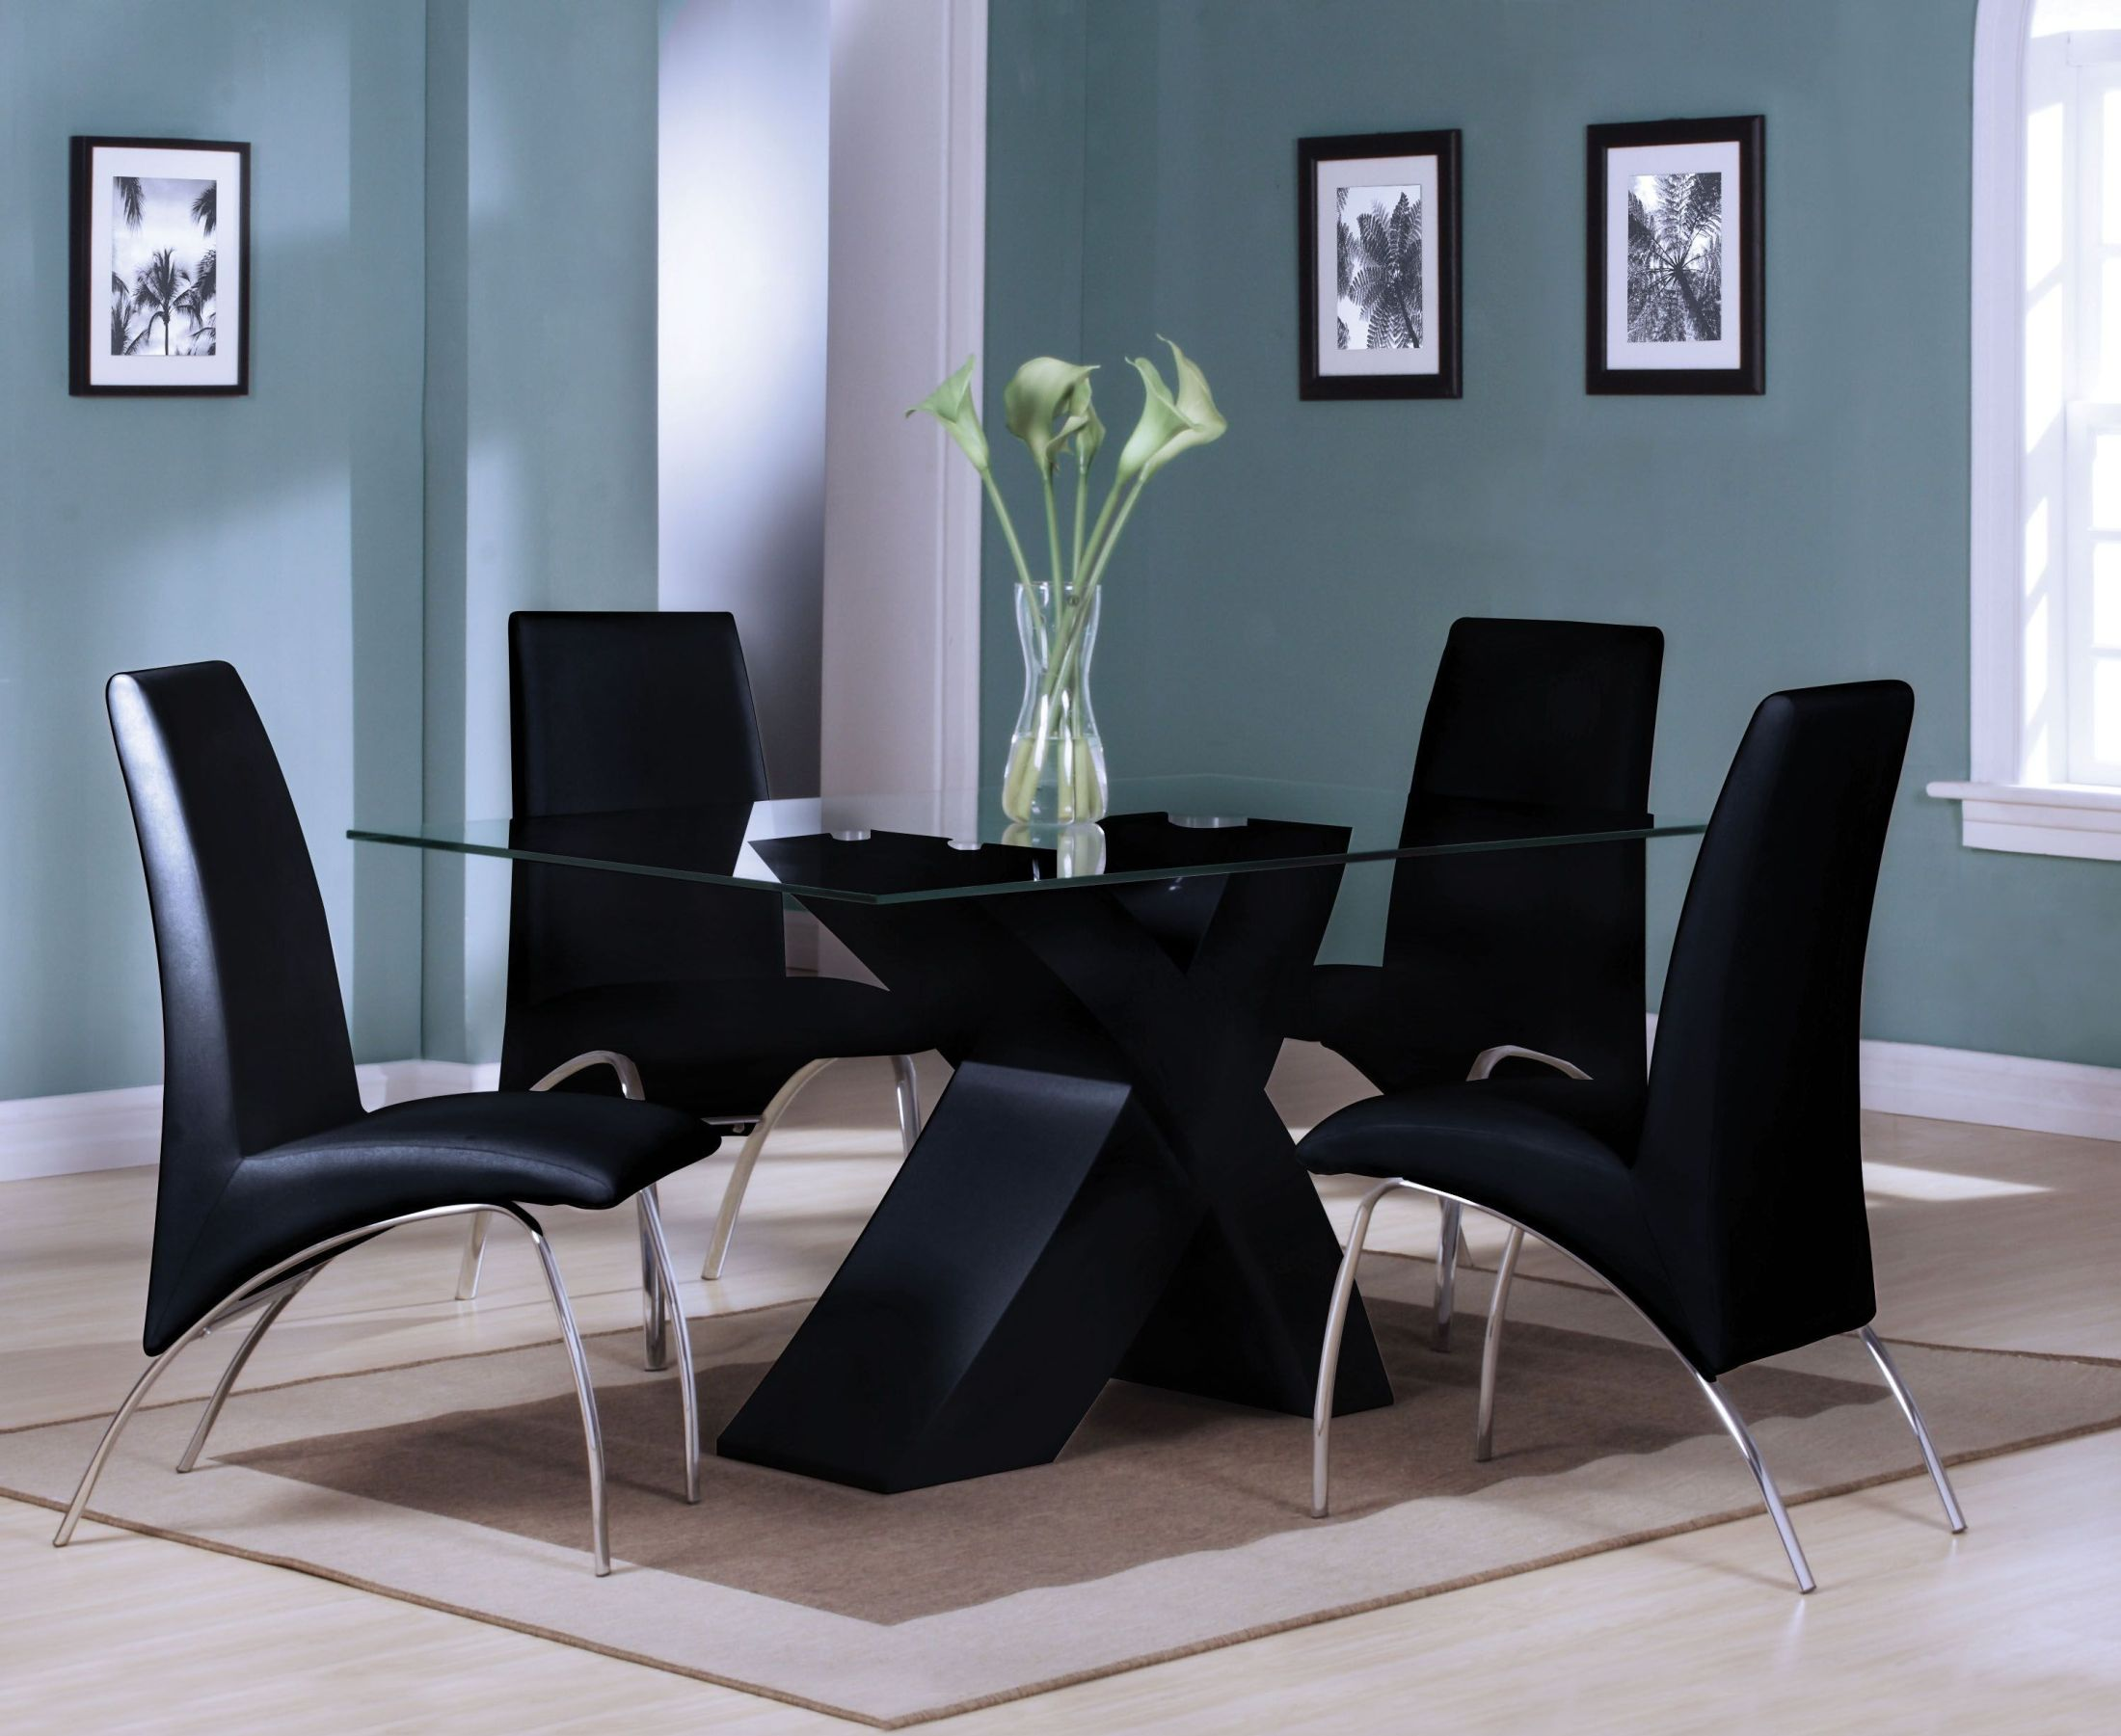 Pervis Black and Clear Glass Dining Room Set